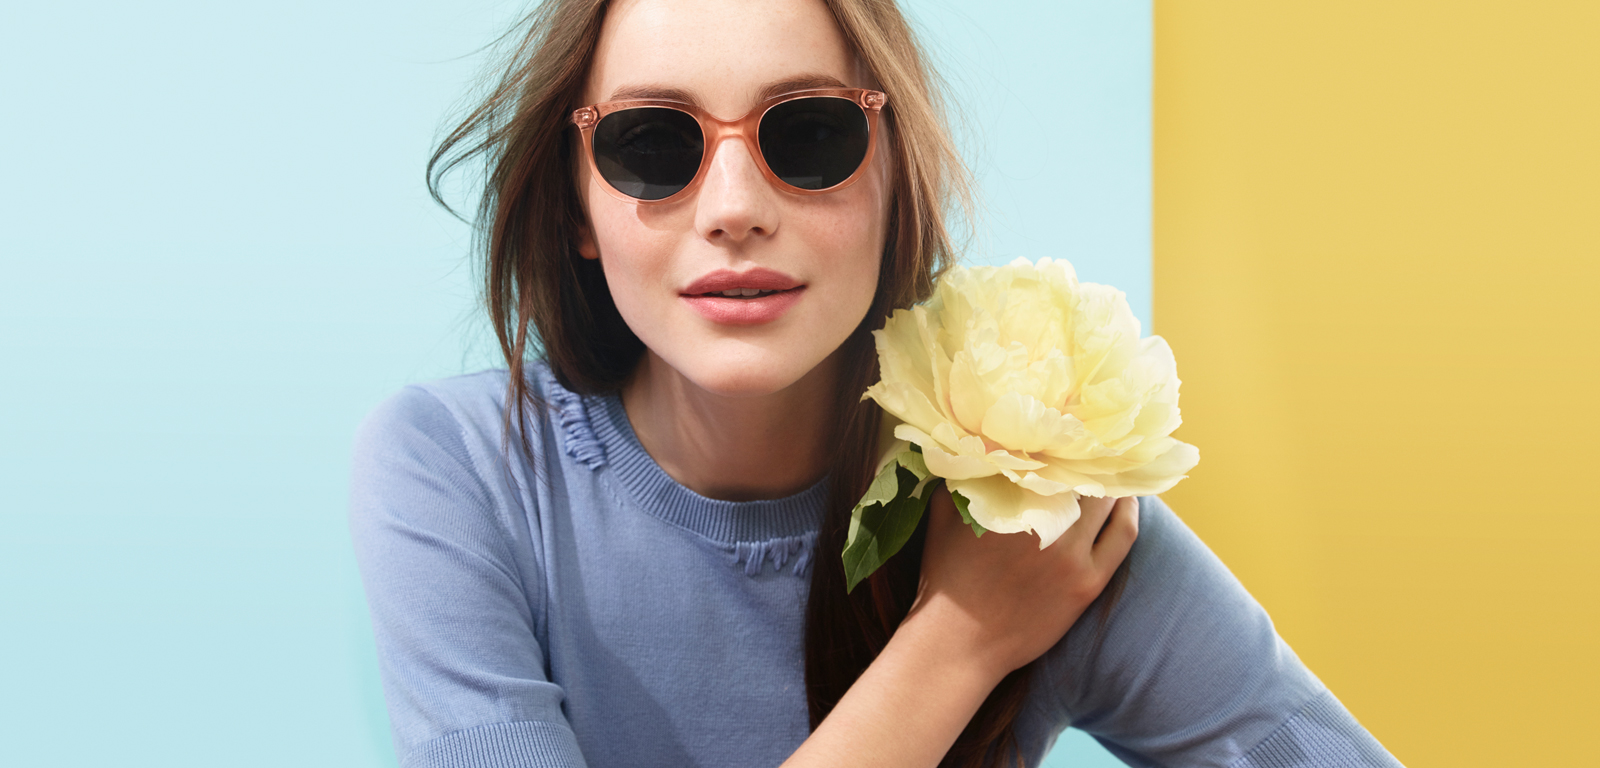 SS16 Warby Parker